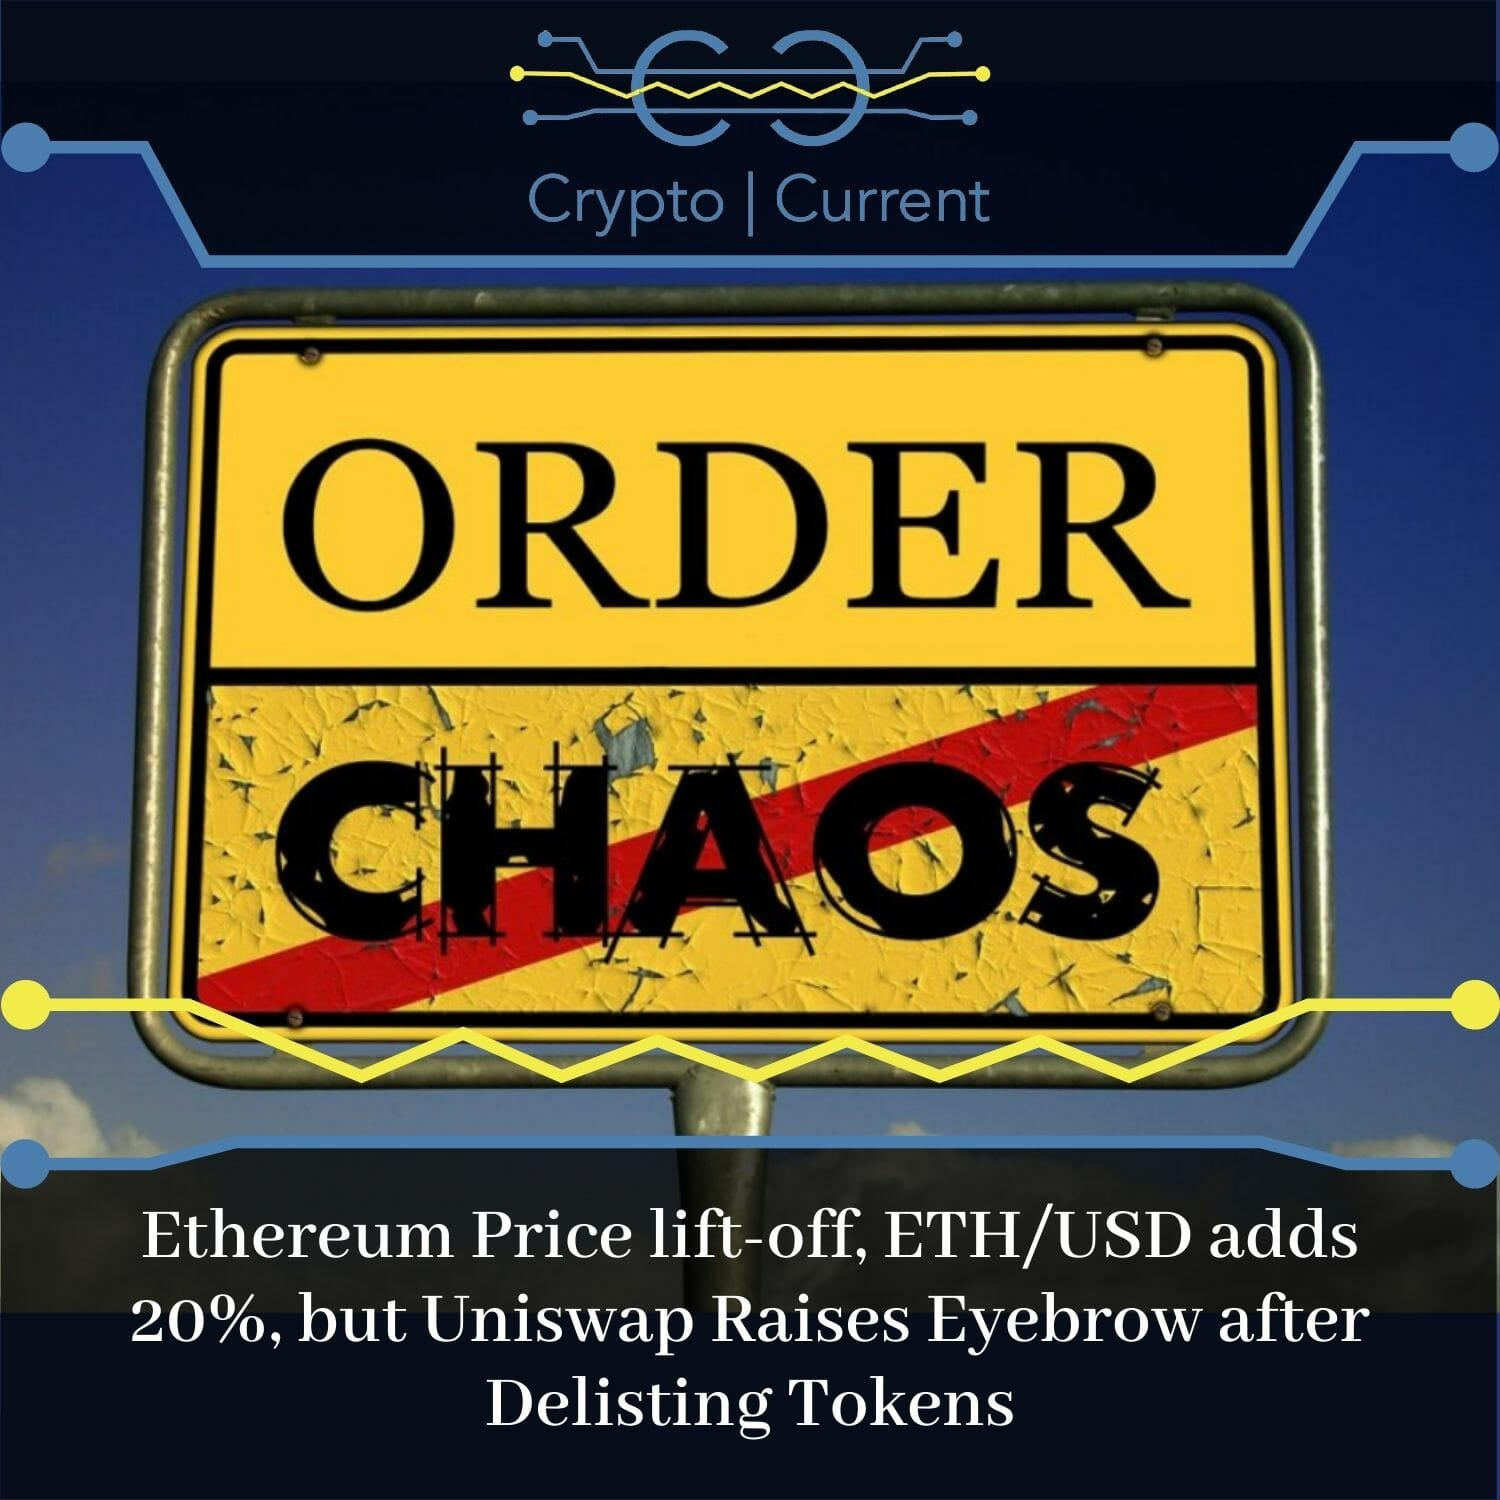 Ethereum Price lift-off, ETH/USD adds 20%, but Uniswap Raises Eyebrow after Delisting Tokens